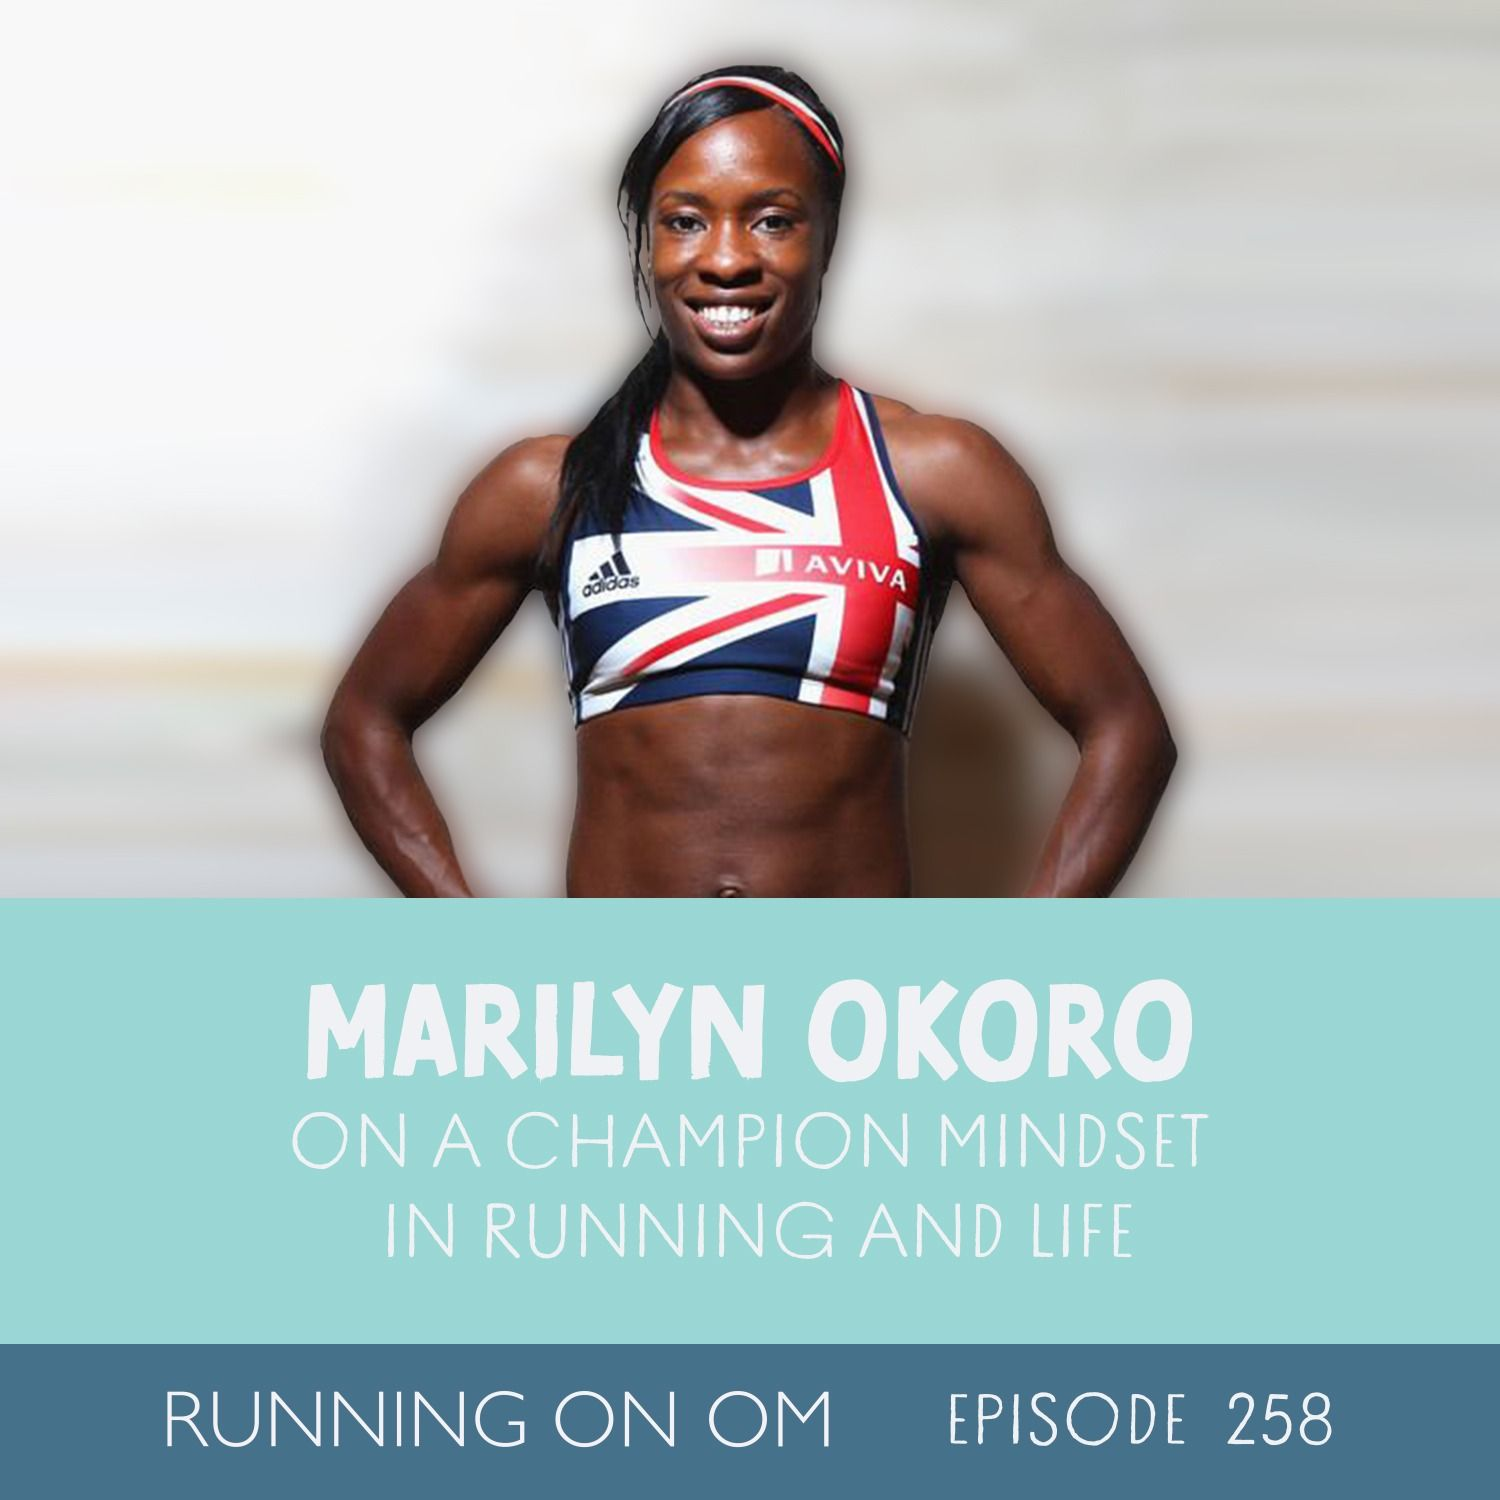 Marilyn Okoro on a Champion Mindset in Running and Life